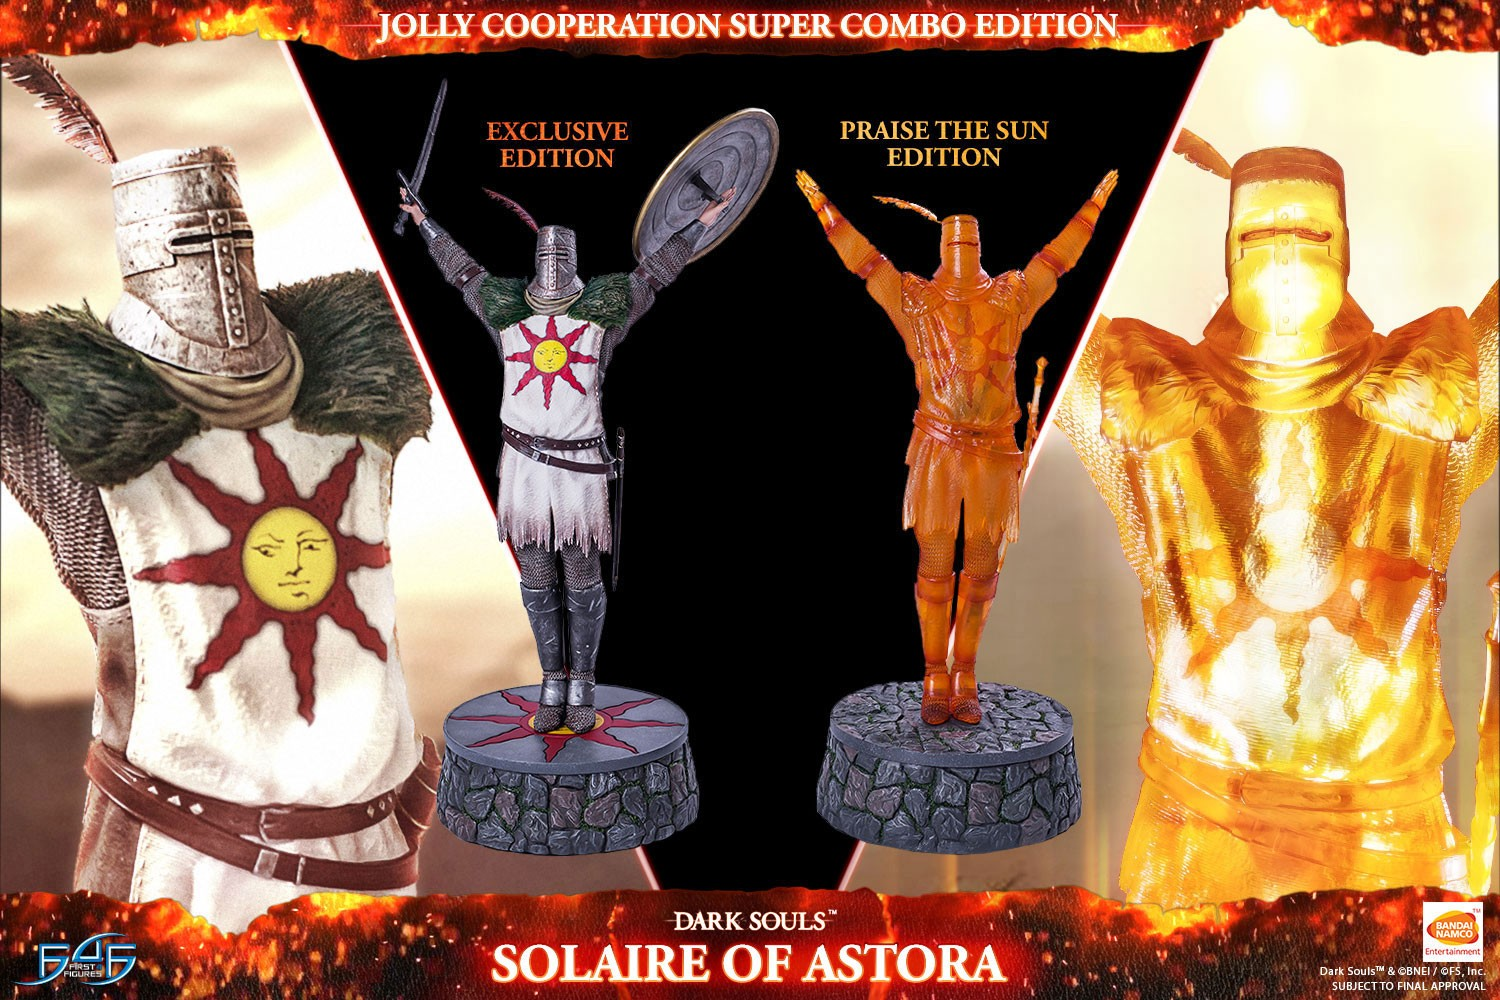 Solaire of Astora (Jolly Cooperation Super Combo Edition)